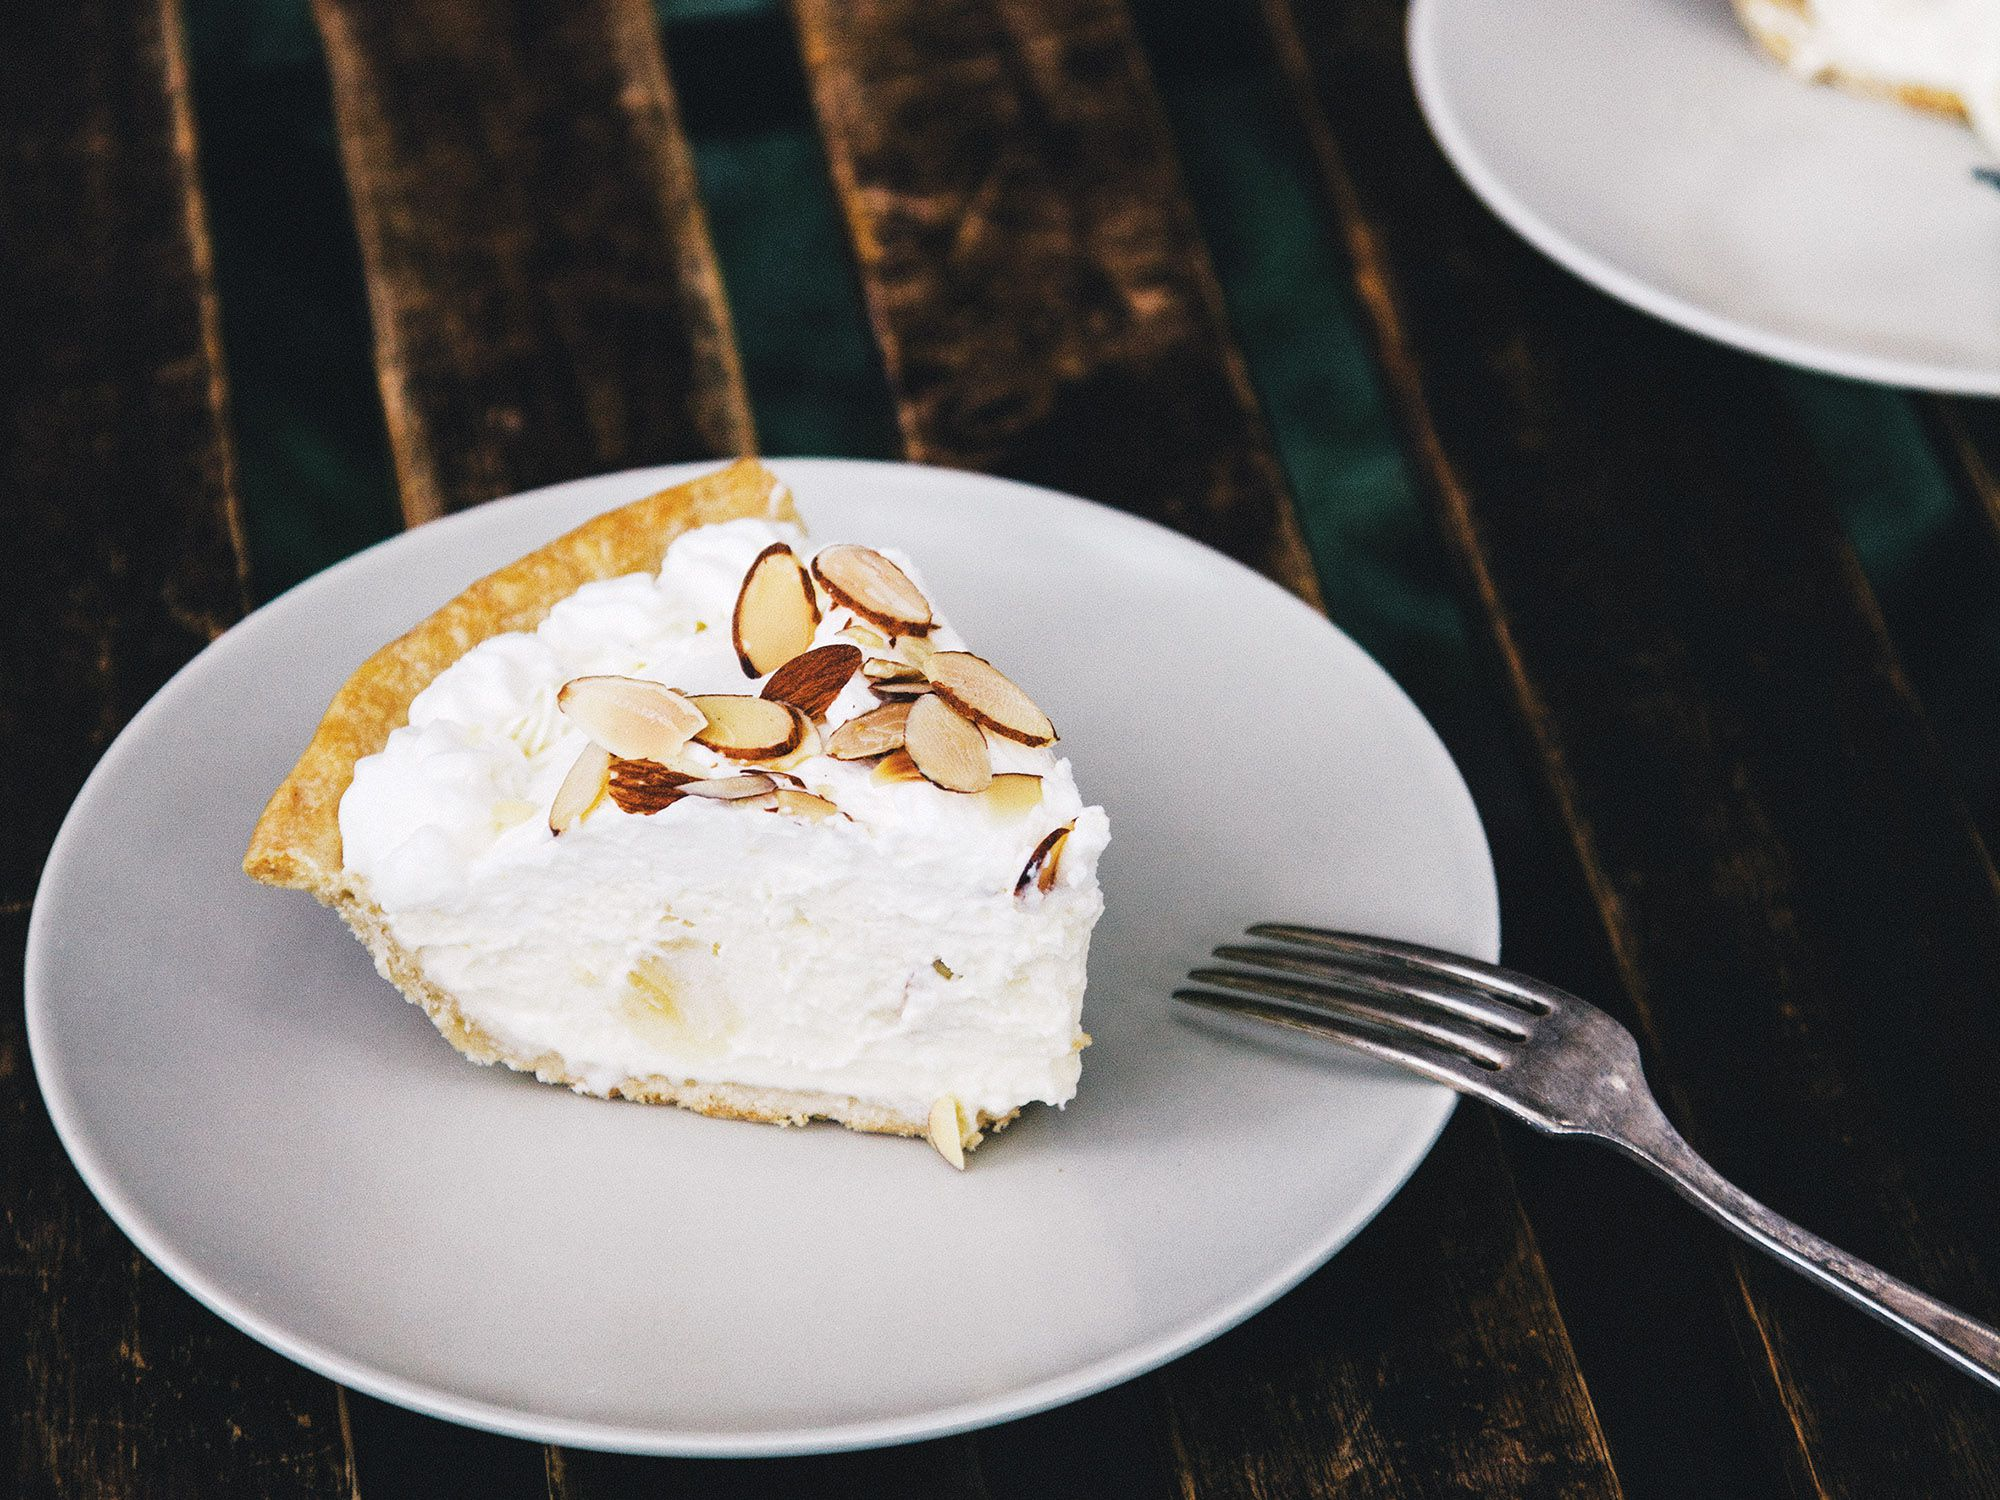 "This nearly forgotten recipe comes to us from the beloved Ships Diner in Los Angeles that closed in 1995. The whipped cream filling doesn't require any cooking—no custard here—while some slices of banana and toasted almond add texture and flavor. A fast, easy-to-make pie from a bygone era that deserves a comeback. Get the recipe for <a href=""http://www.saveur.com/easy-french-banana-cream-pie-recipe"">Classic French Banana Cream Pie</a>"